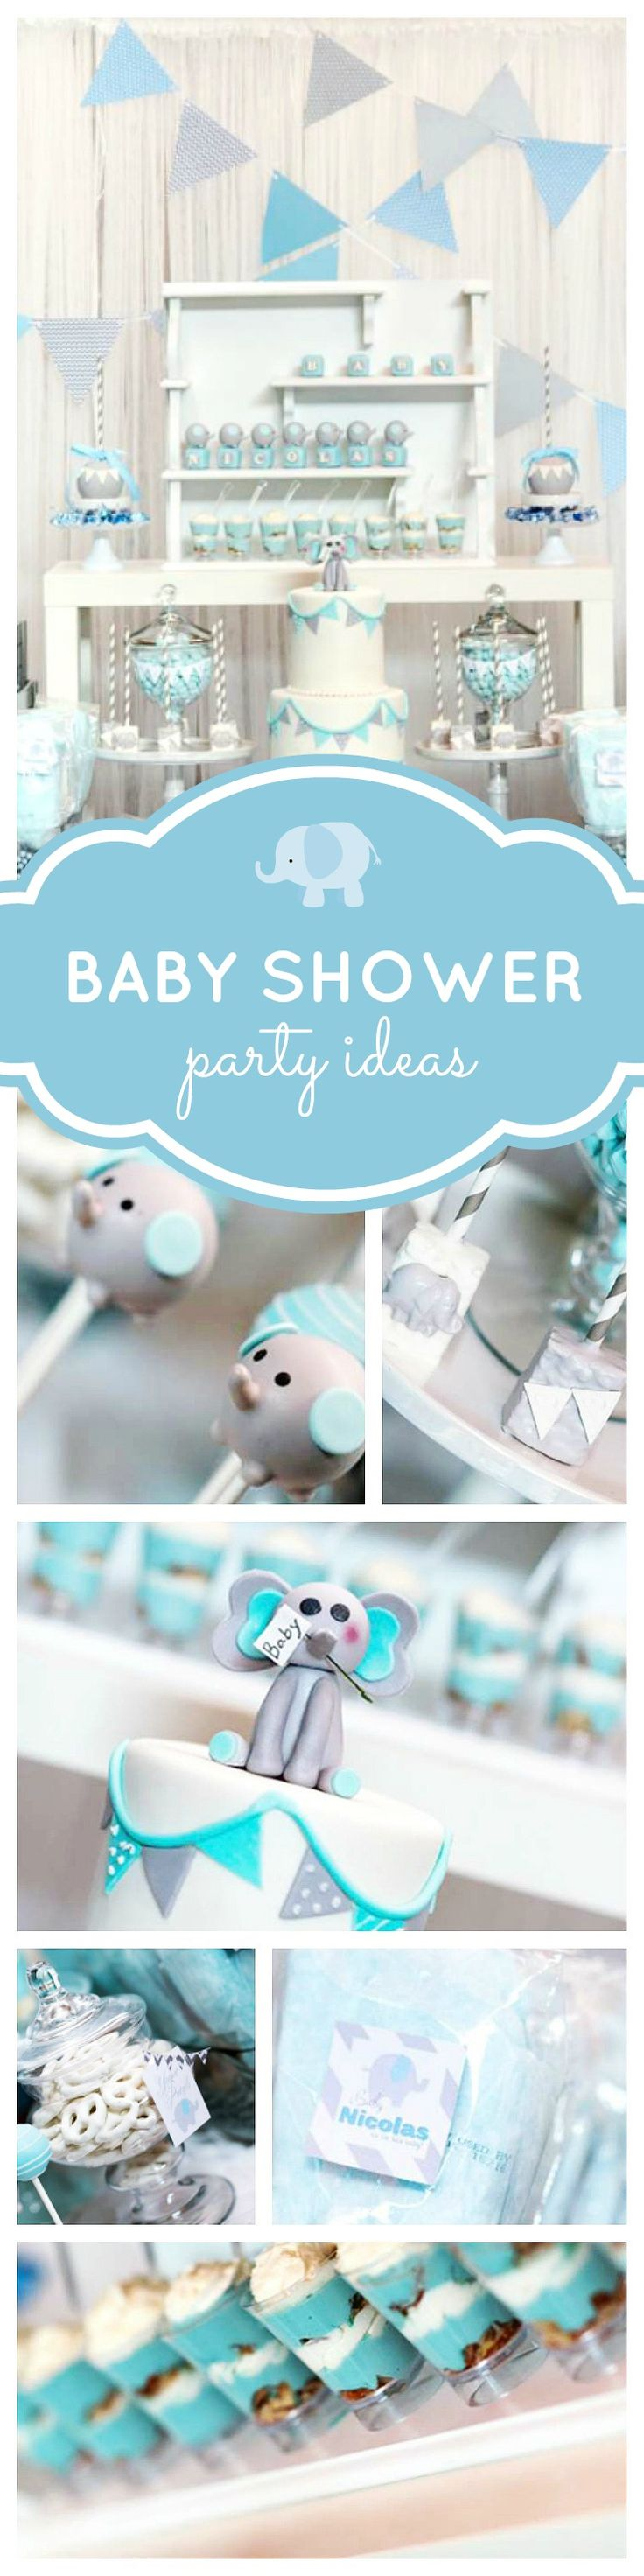 You won't want to miss this adorable blue elephant baby shower for little boys. The elephant cake pops are just too cute! See more party ideas at CatchMyParty.com